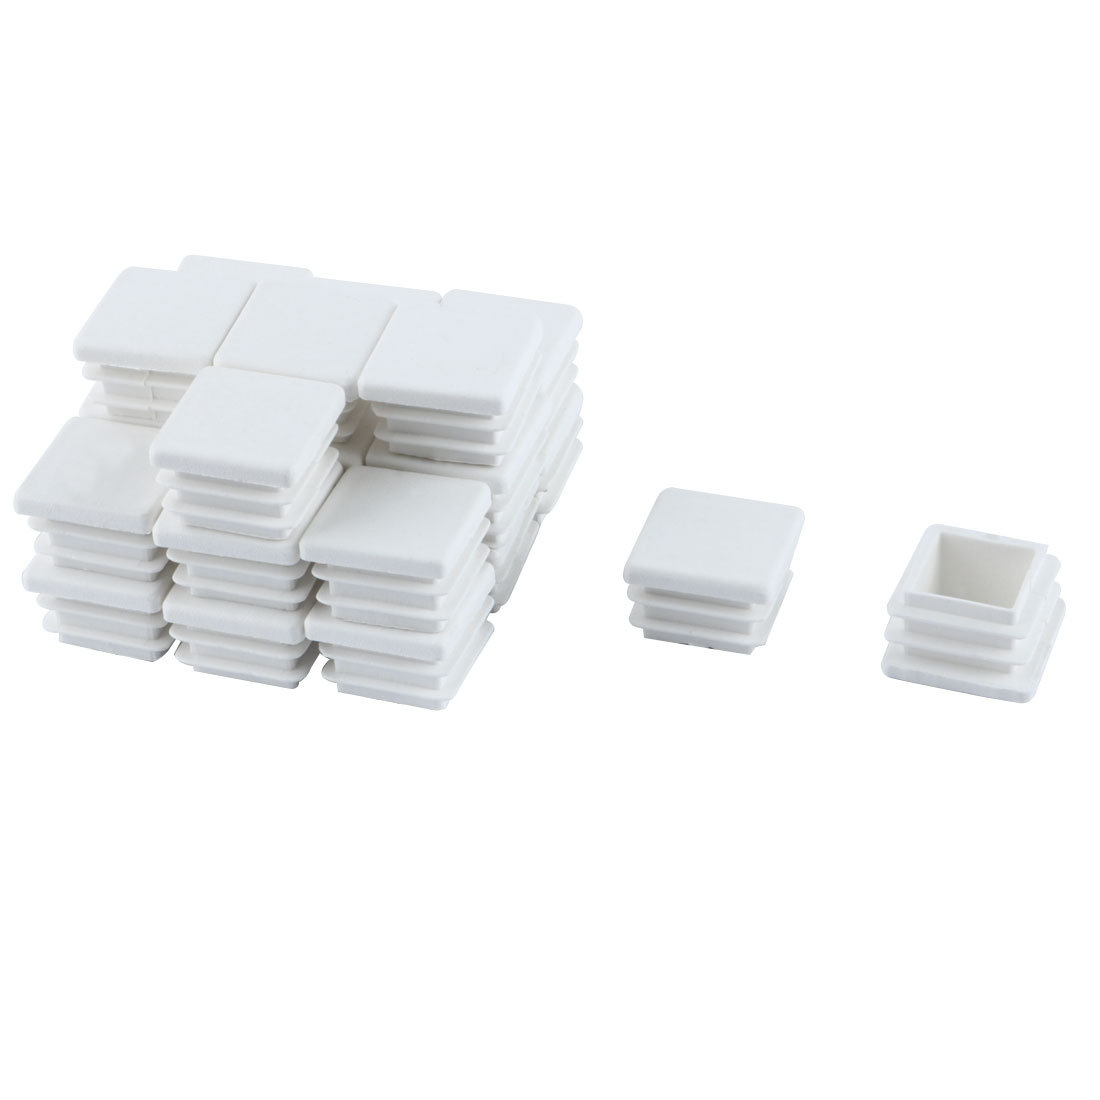 24 Pieces White Plastic Square Blanking End Caps Tubing Tube Inserts 20mm x 20mm